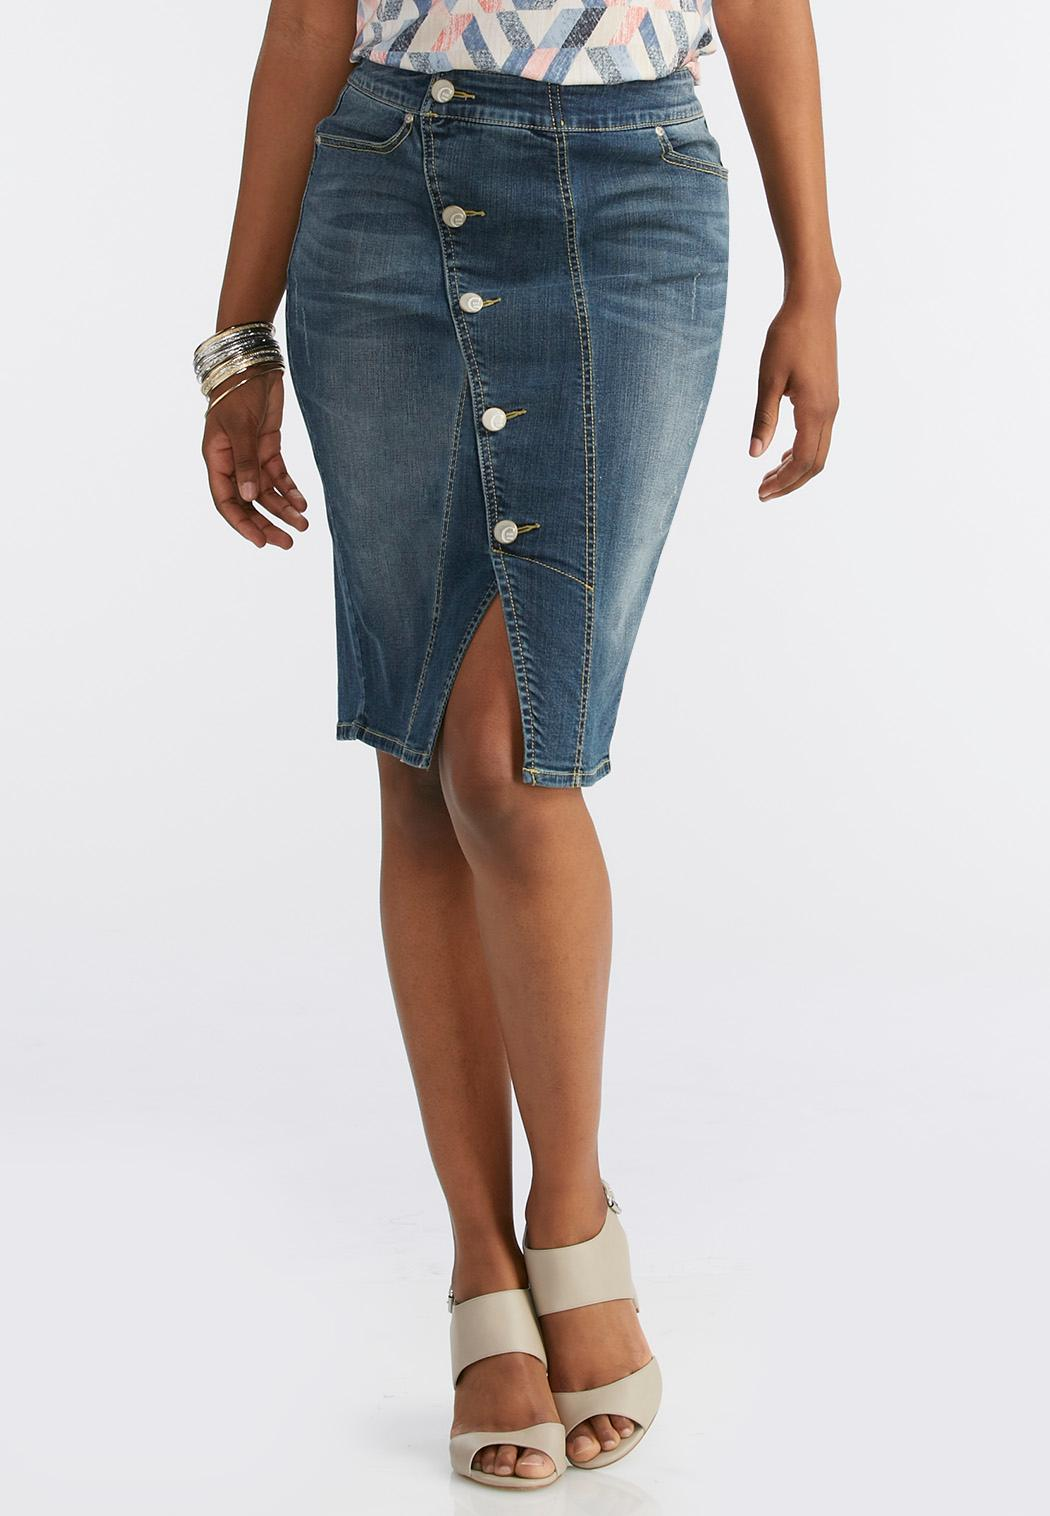 Asymmetrical Button Front Denim Skirt Skirts | Cato Fashions